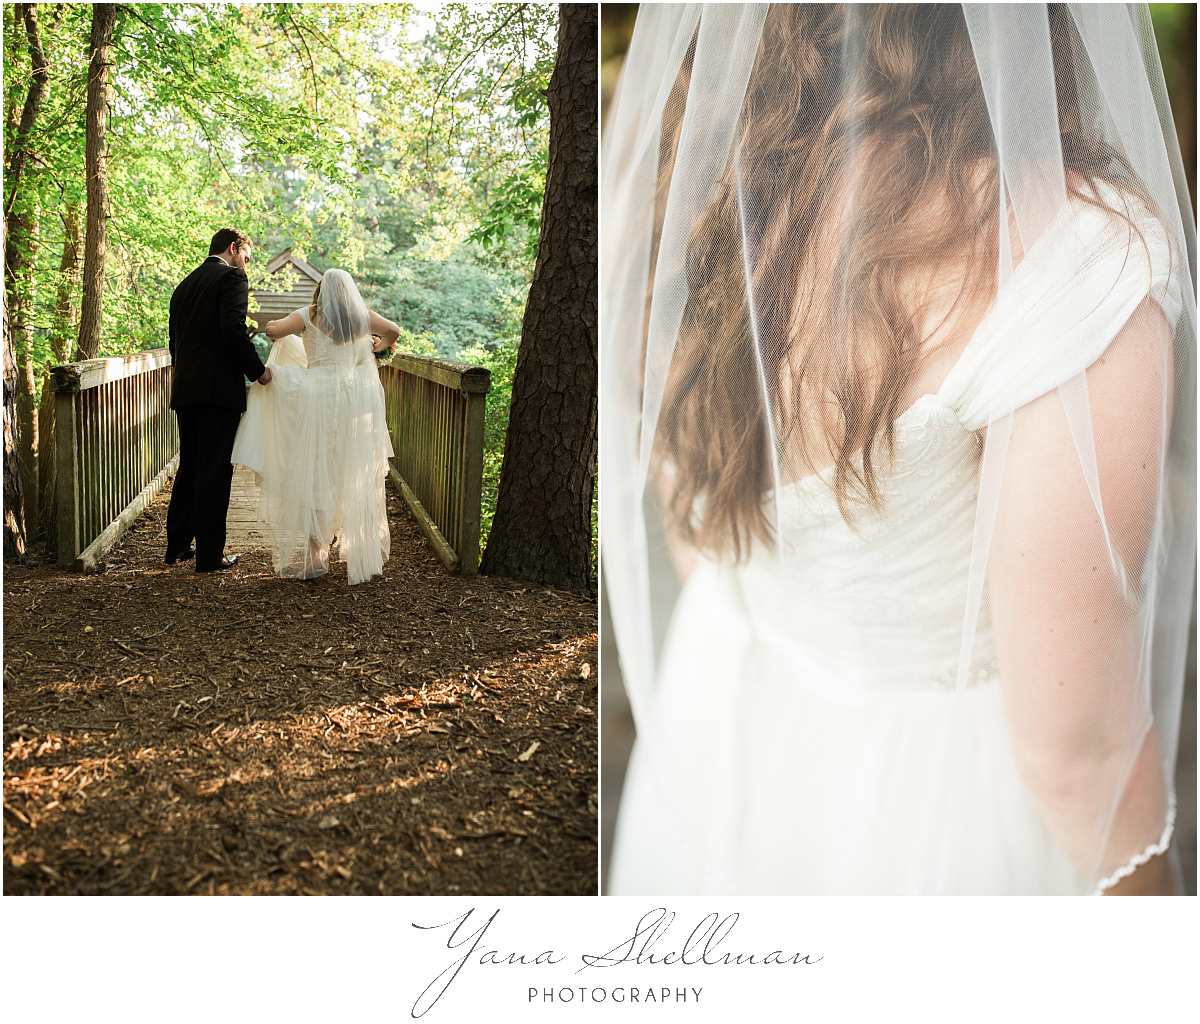 Lakeside at Medford Wedding by Haddonfield Wedding Photographers - Jane+Mark South Jersey Wedding Photos